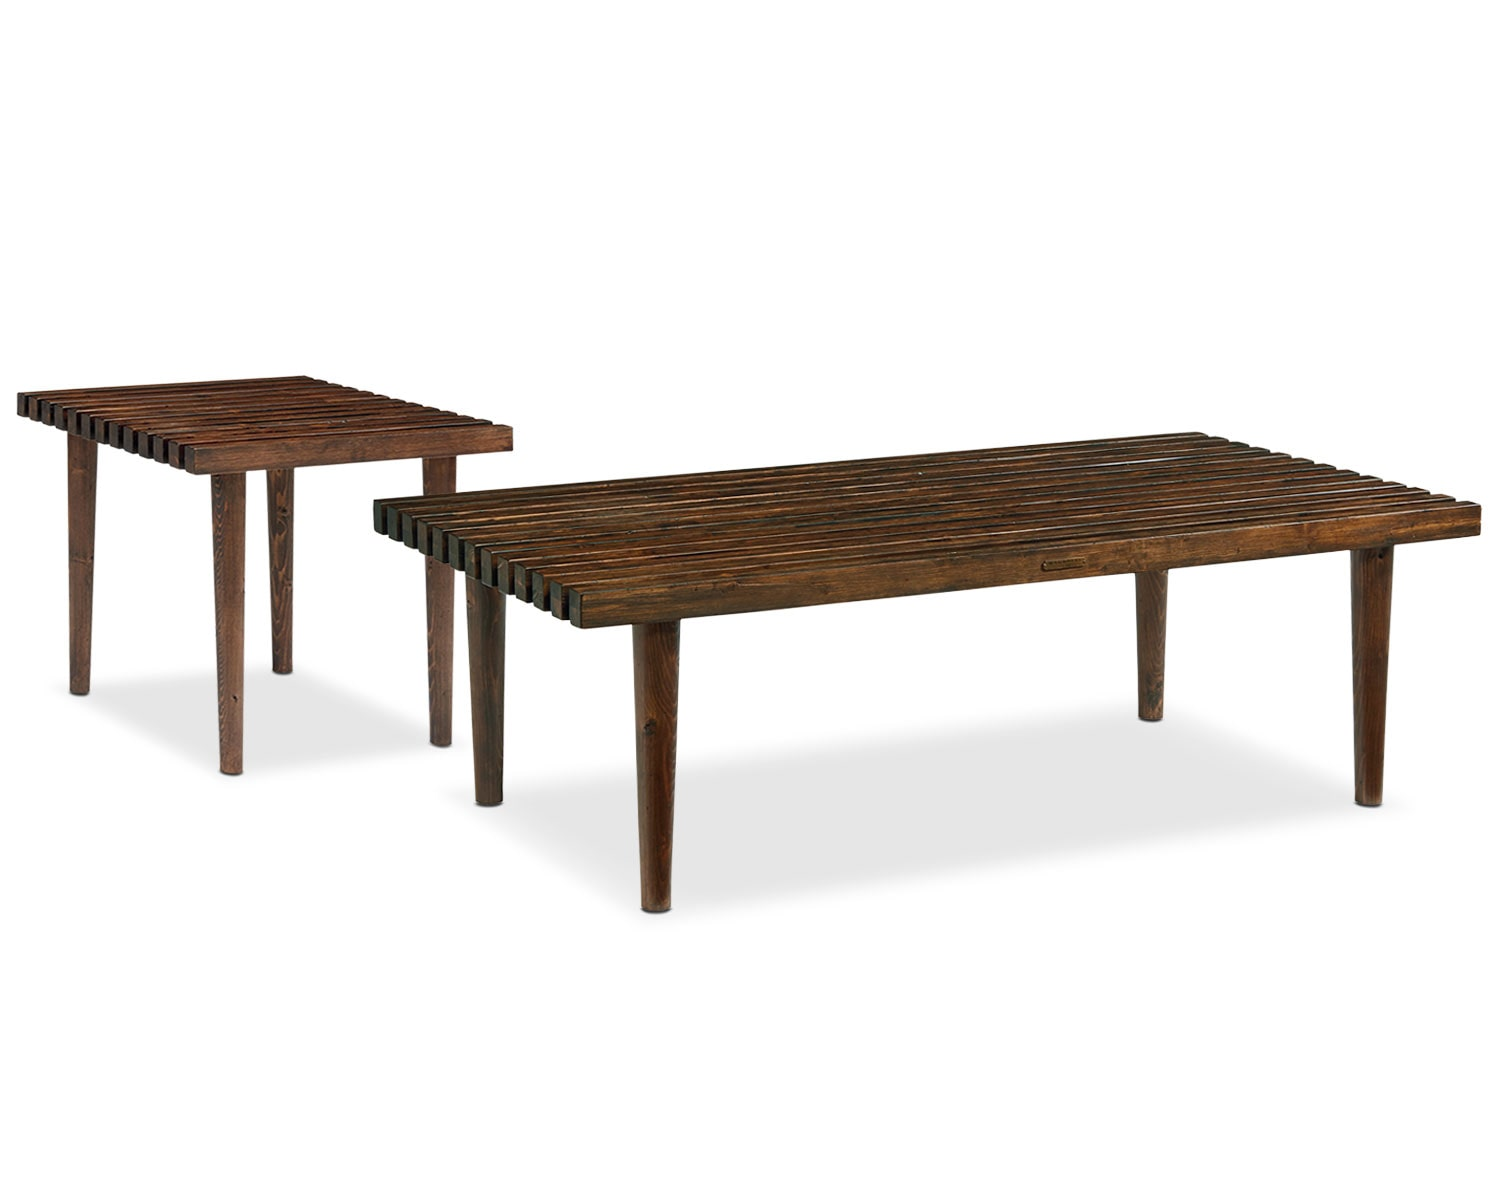 The Slat Table Collection